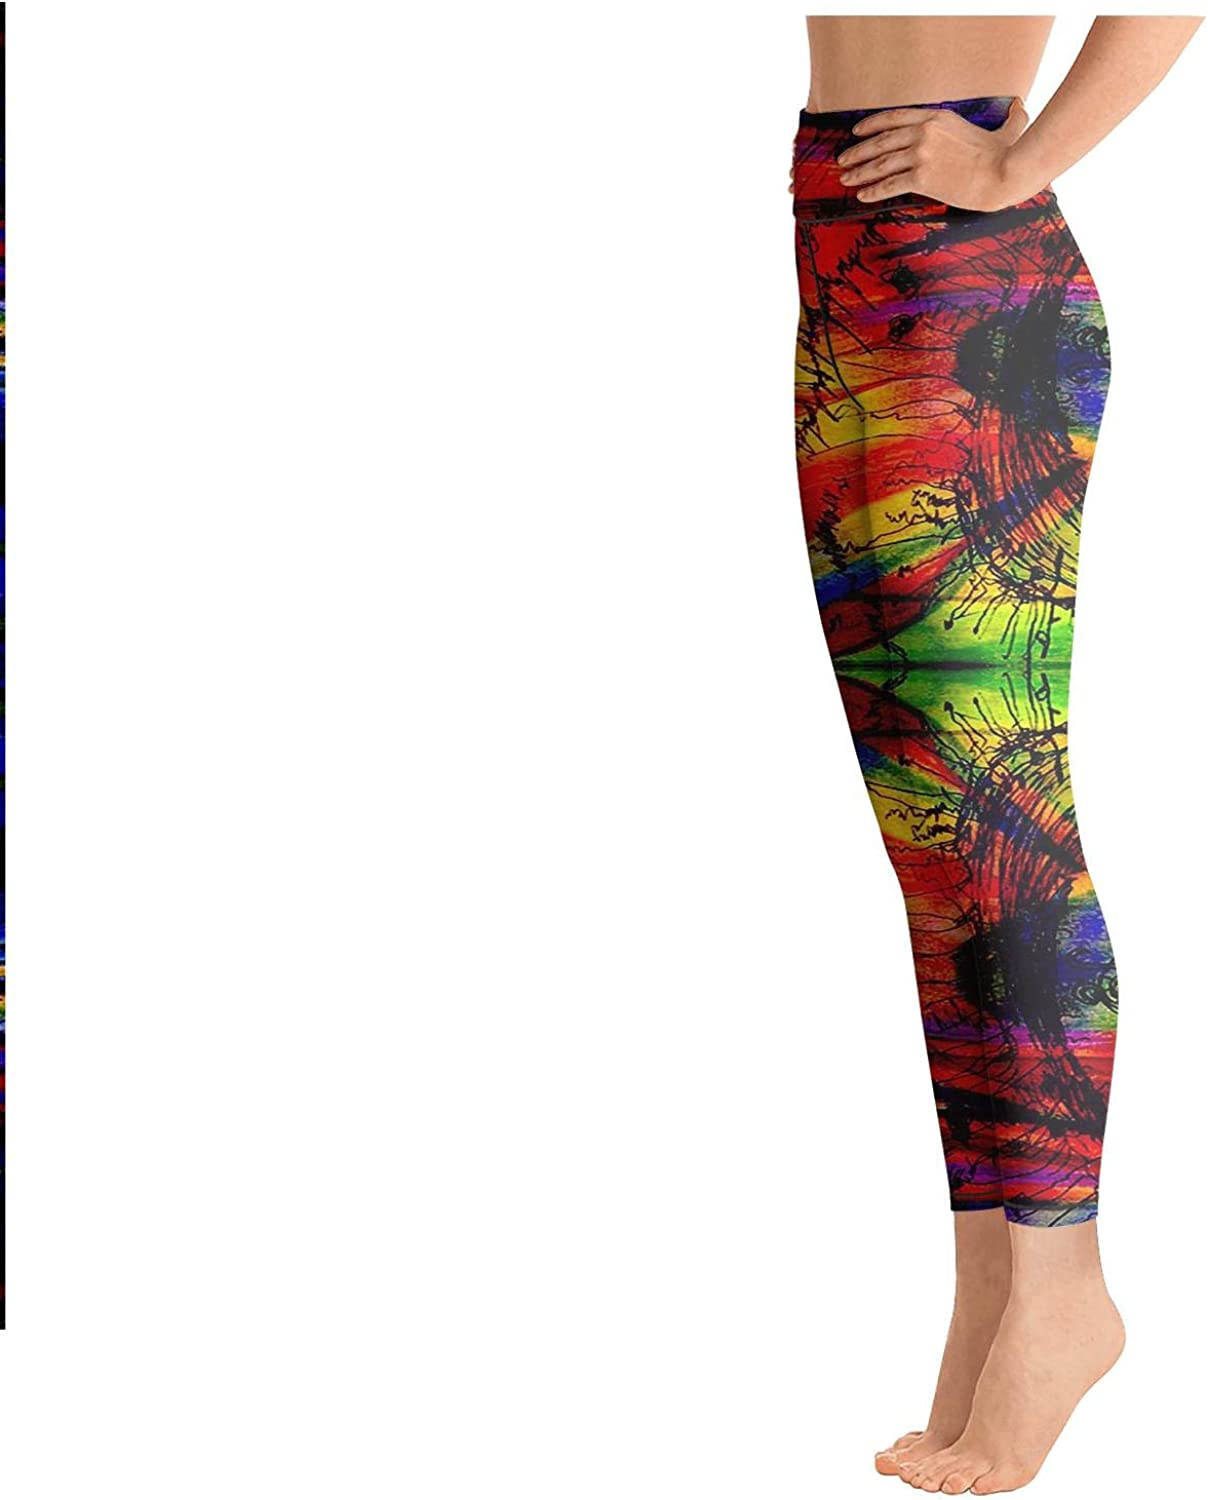 Yoga Pants with Pockets for Womens Workout Capris Trippy Art Backgrounds High Waist Tights for Girls